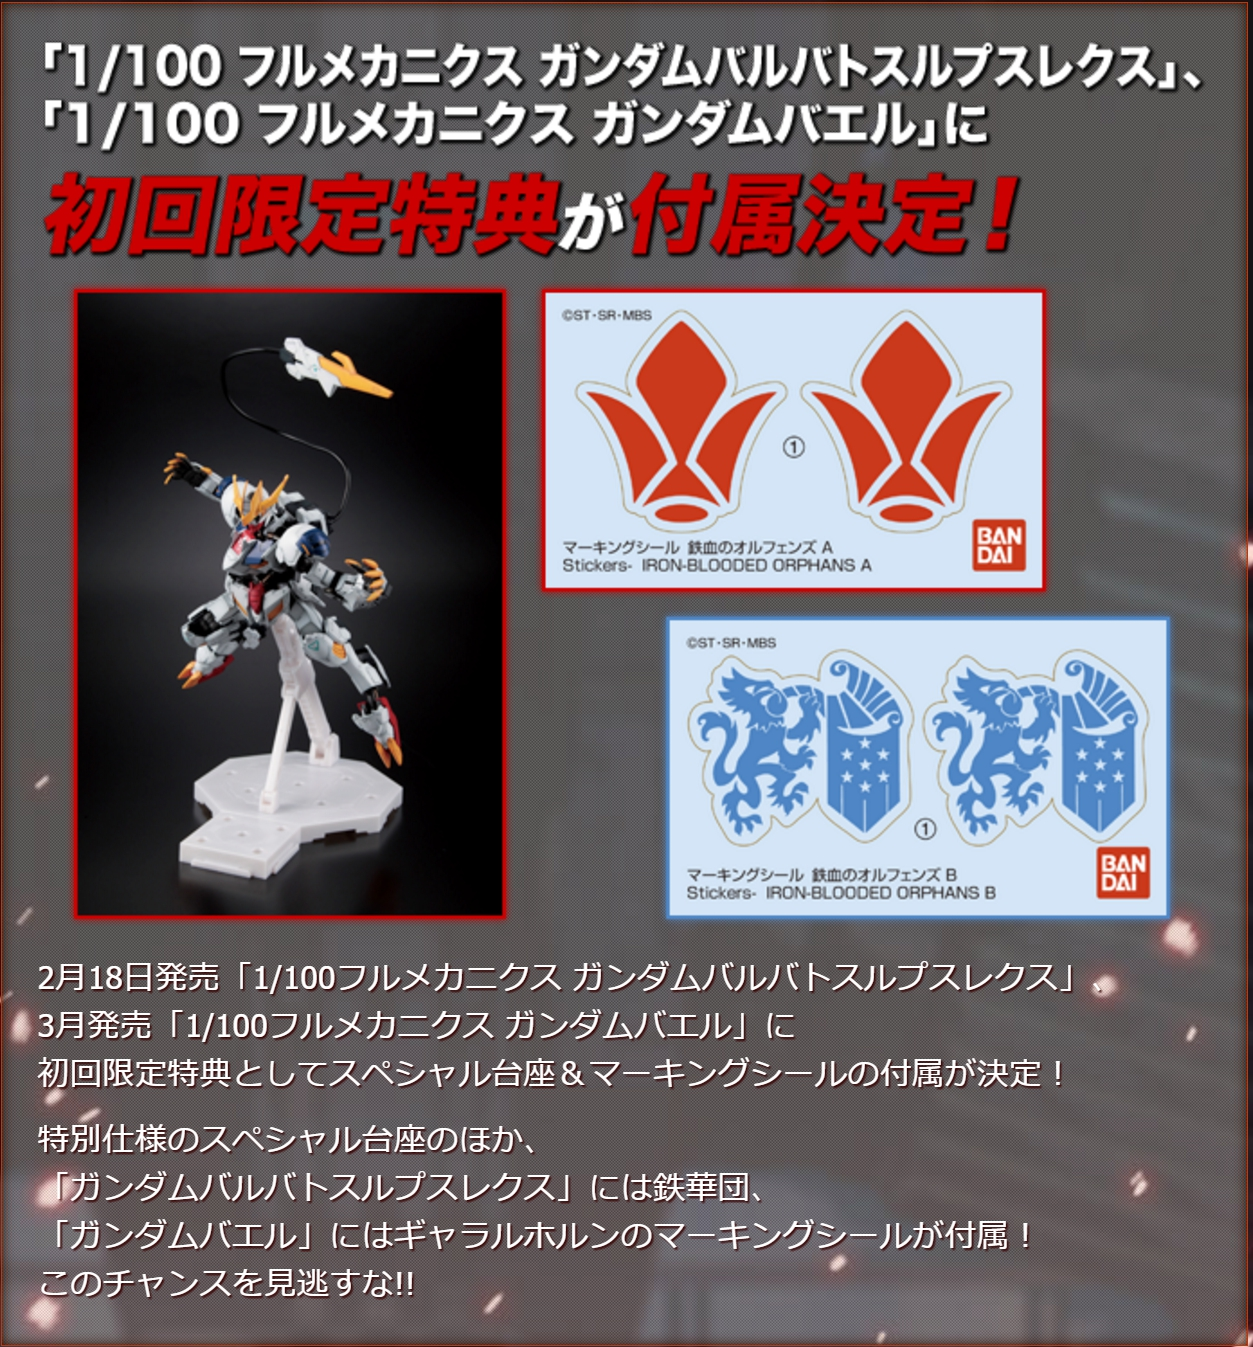 1/100 Full Mechanics Gundam Barbatos Lupus Rex [First Run Limited Edition] - Release Info, Box art and Official Images